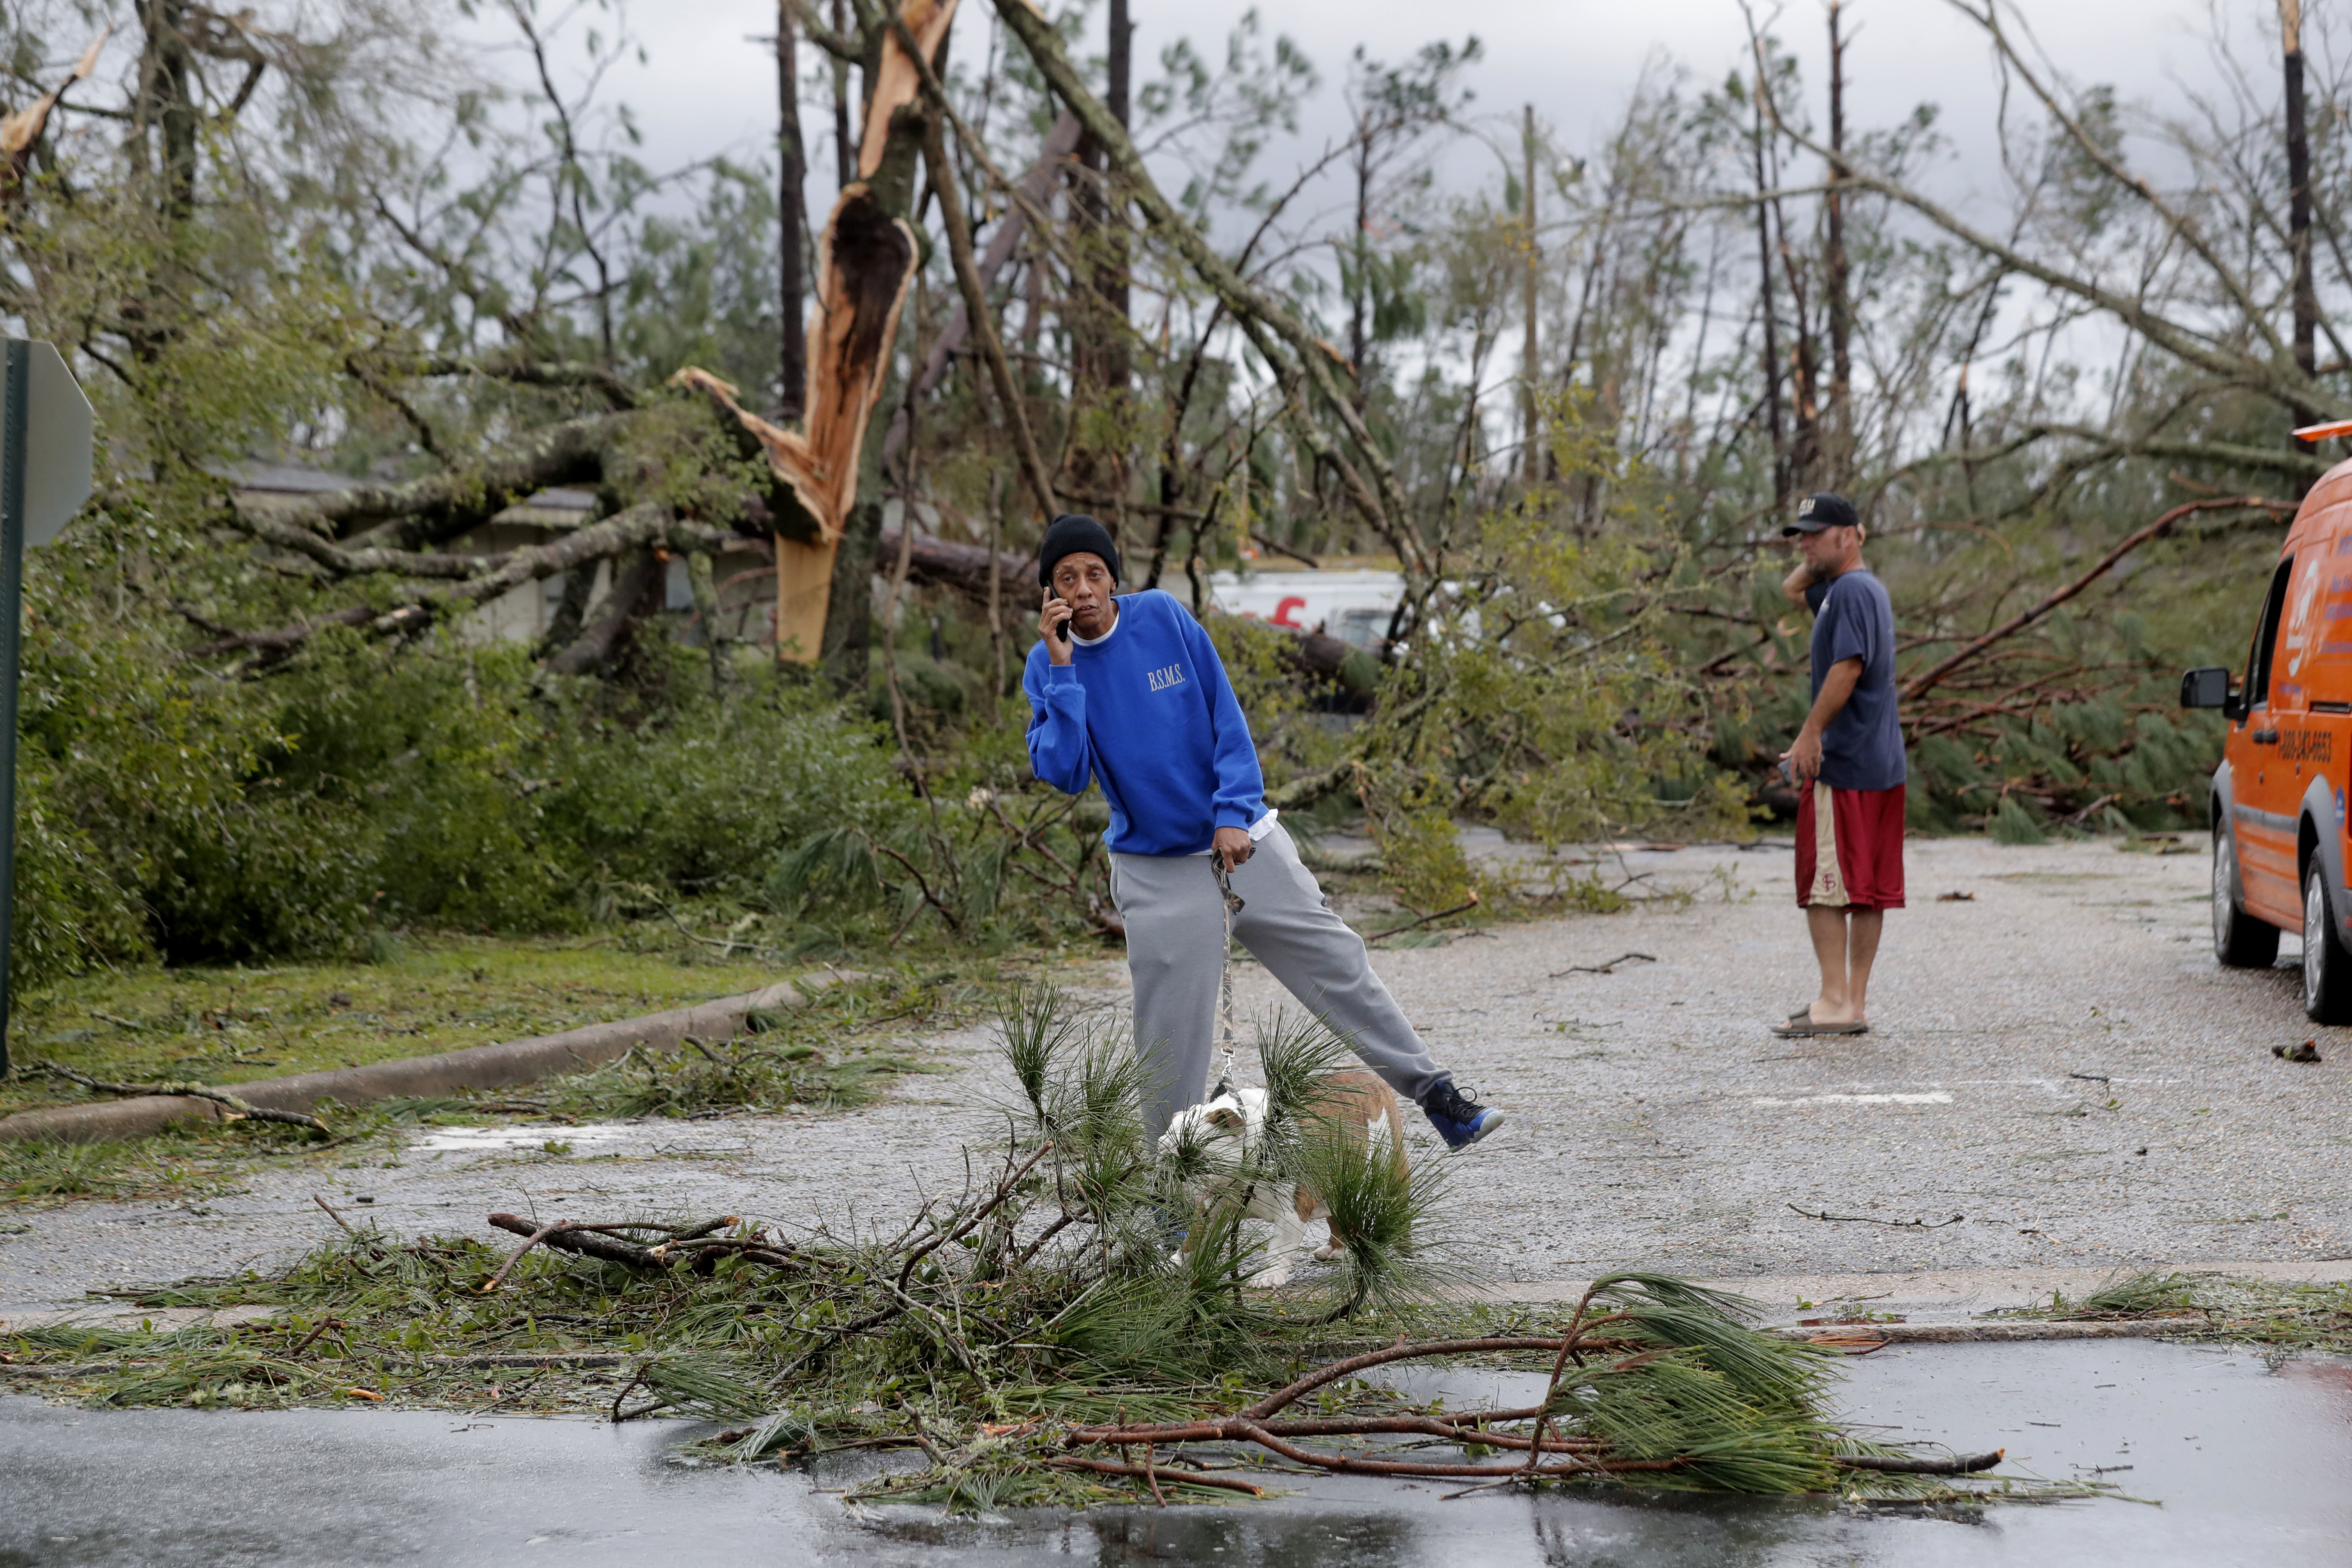 Pam Heckstall surveys the damage as the remnants of Hurricane Michael move through Panama City, Fla., Wednesday, Oct. 10, 2018. She is not able to leave her street due to downed trees. (AP Photo/Gerald Herbert)